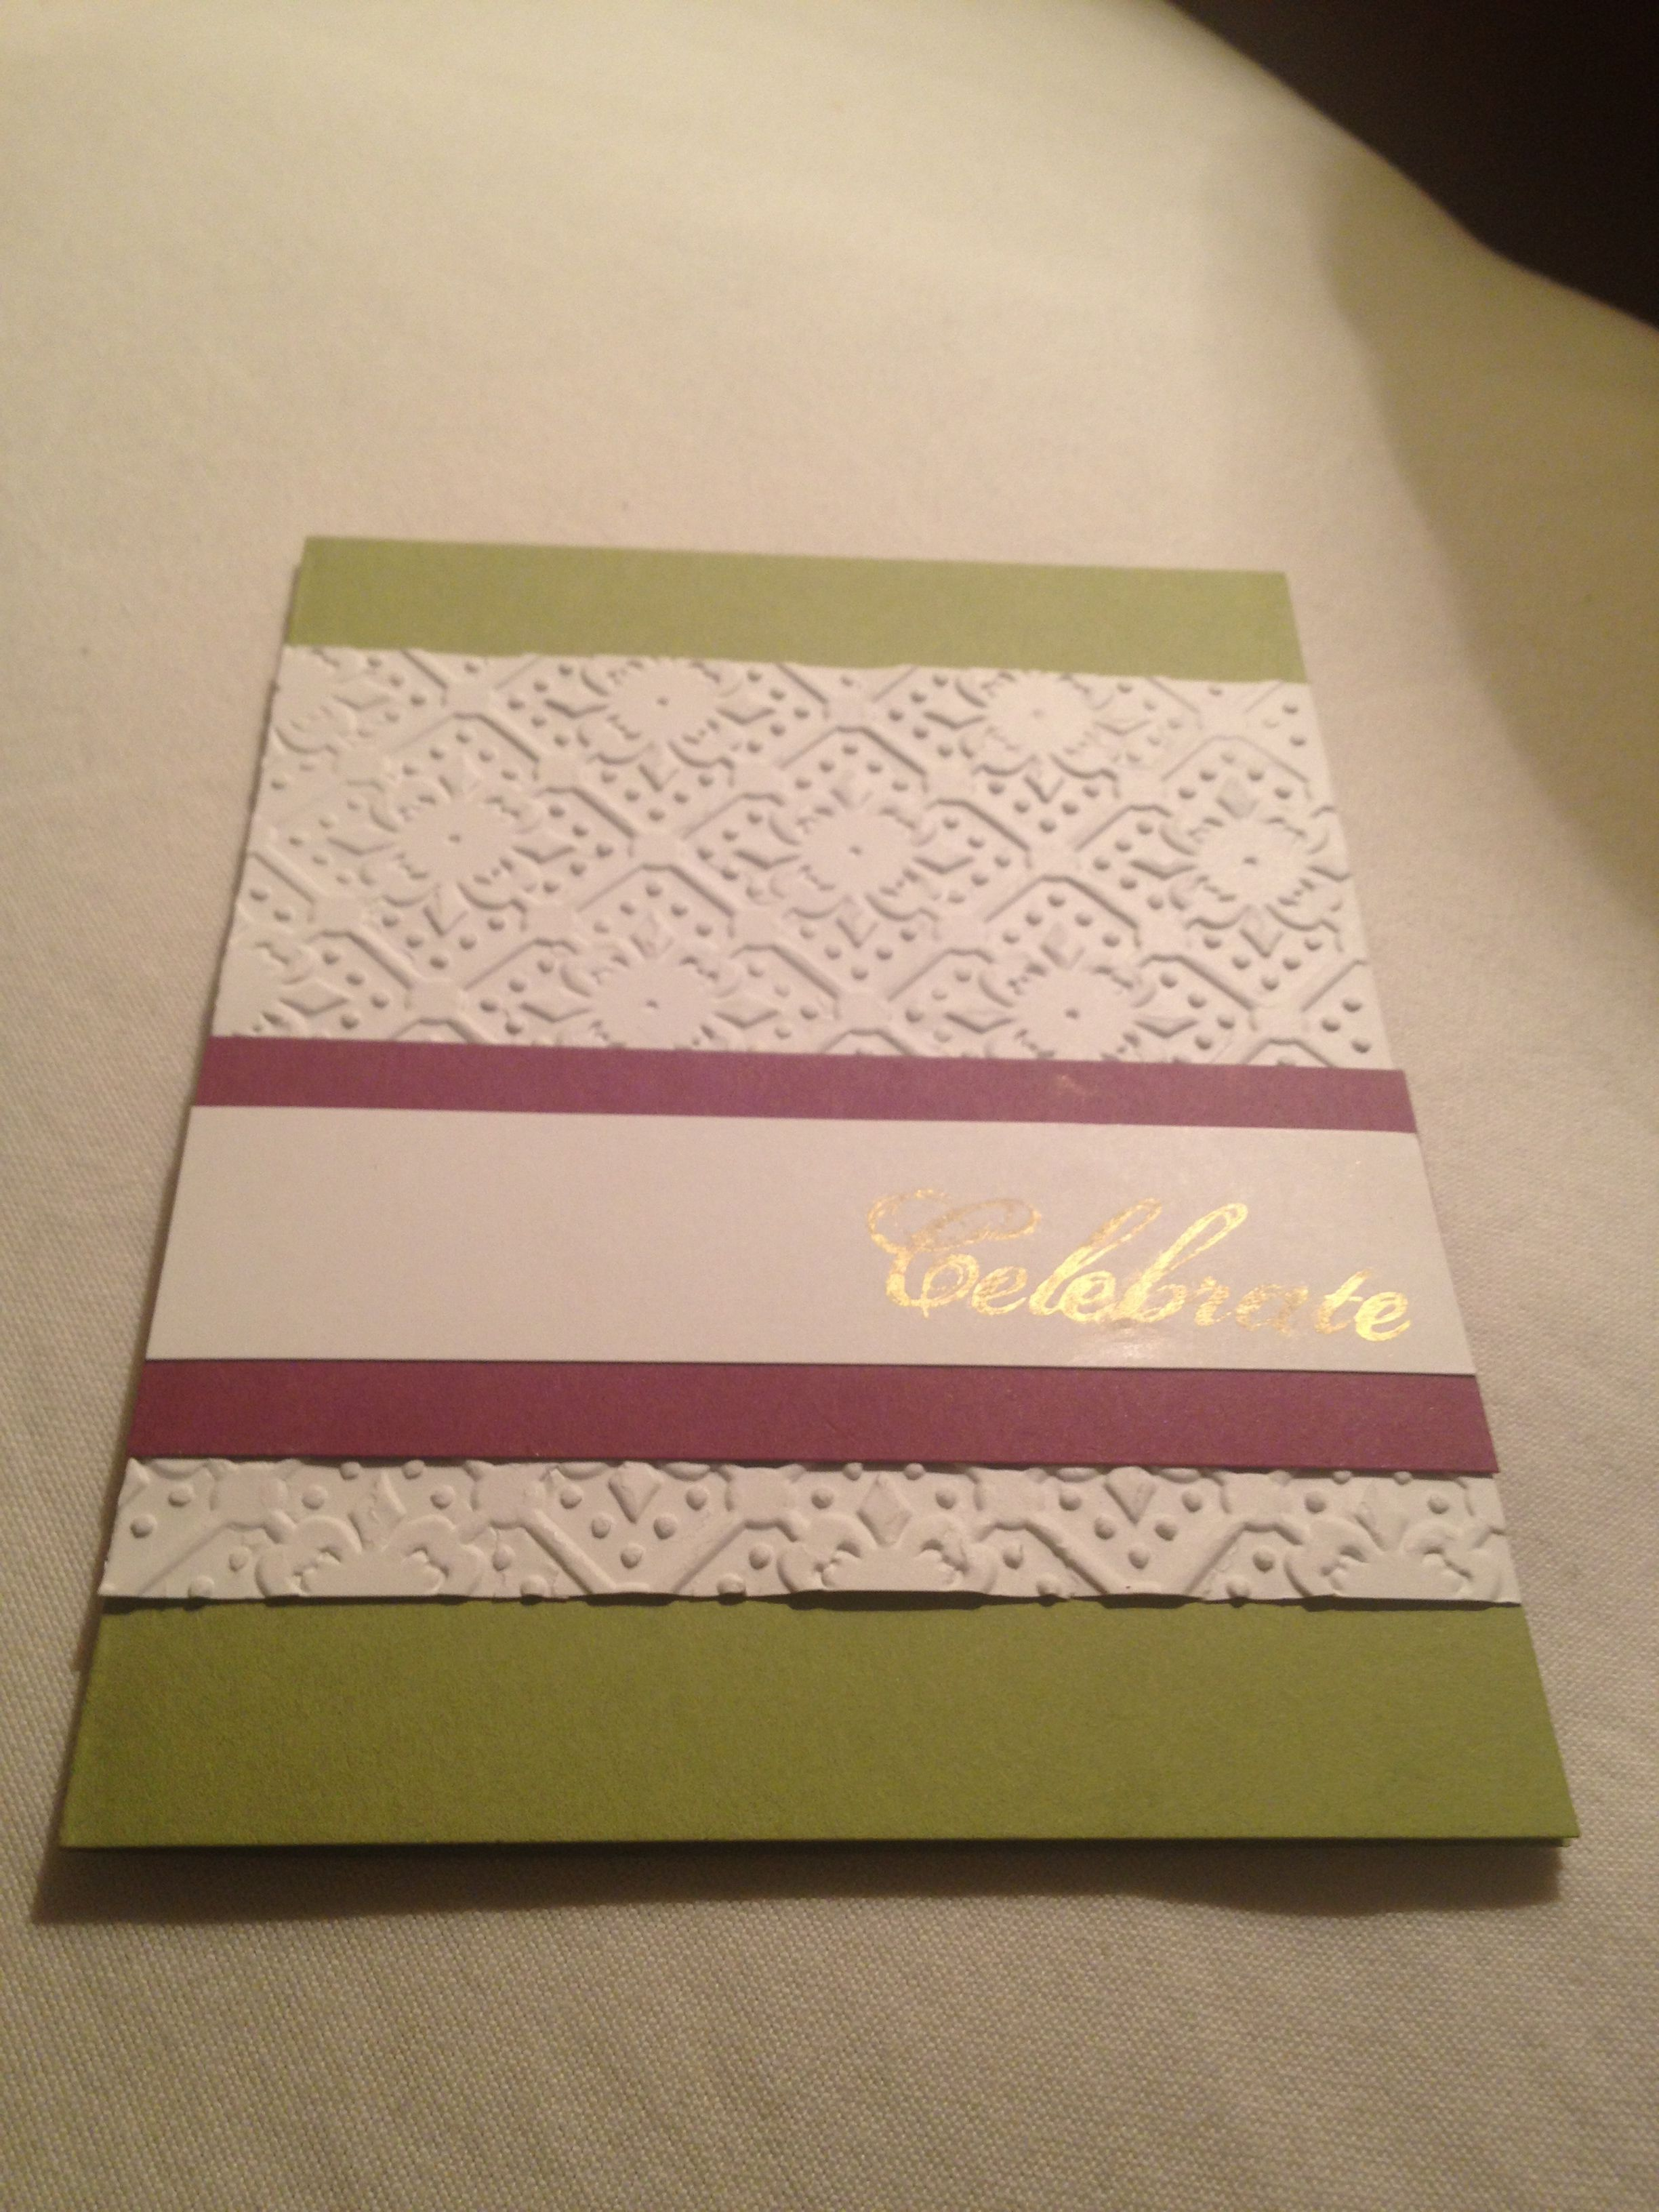 A birthday card i made for my grandma using stampin up paper colors